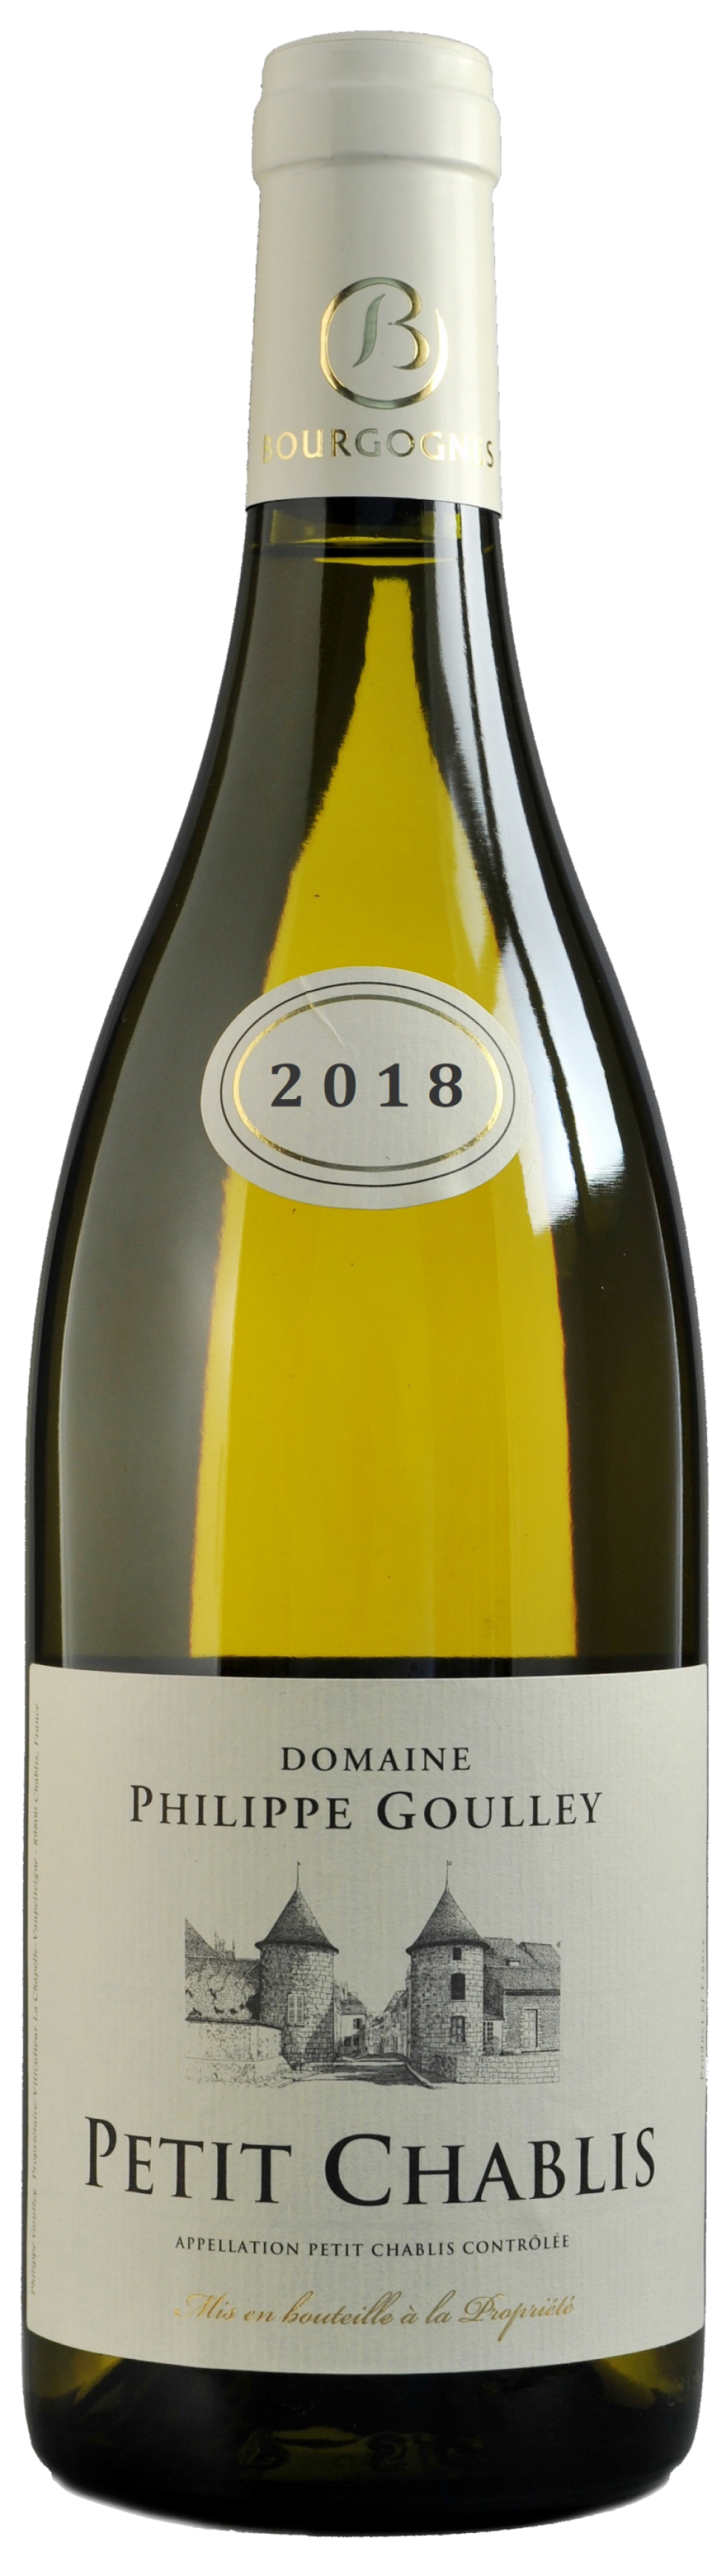 files/images/wines/France/domaine-philippe-goulley-burgundy/Philippe Goulley 2019/2018 PT chablis.png